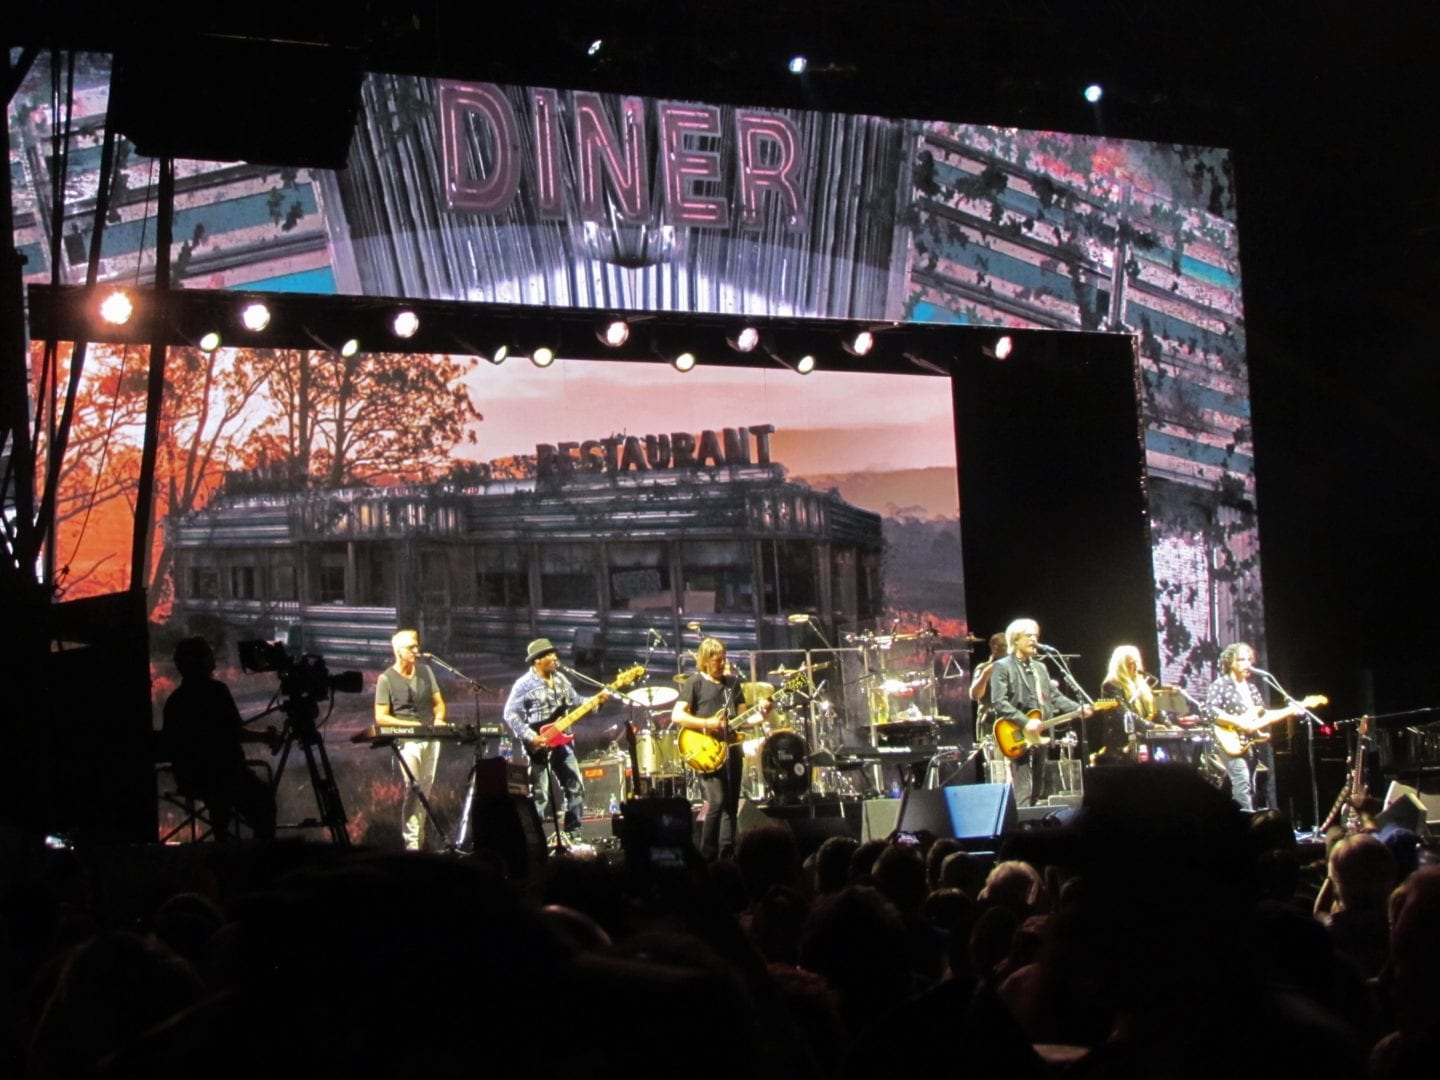 Hall Oates and his band